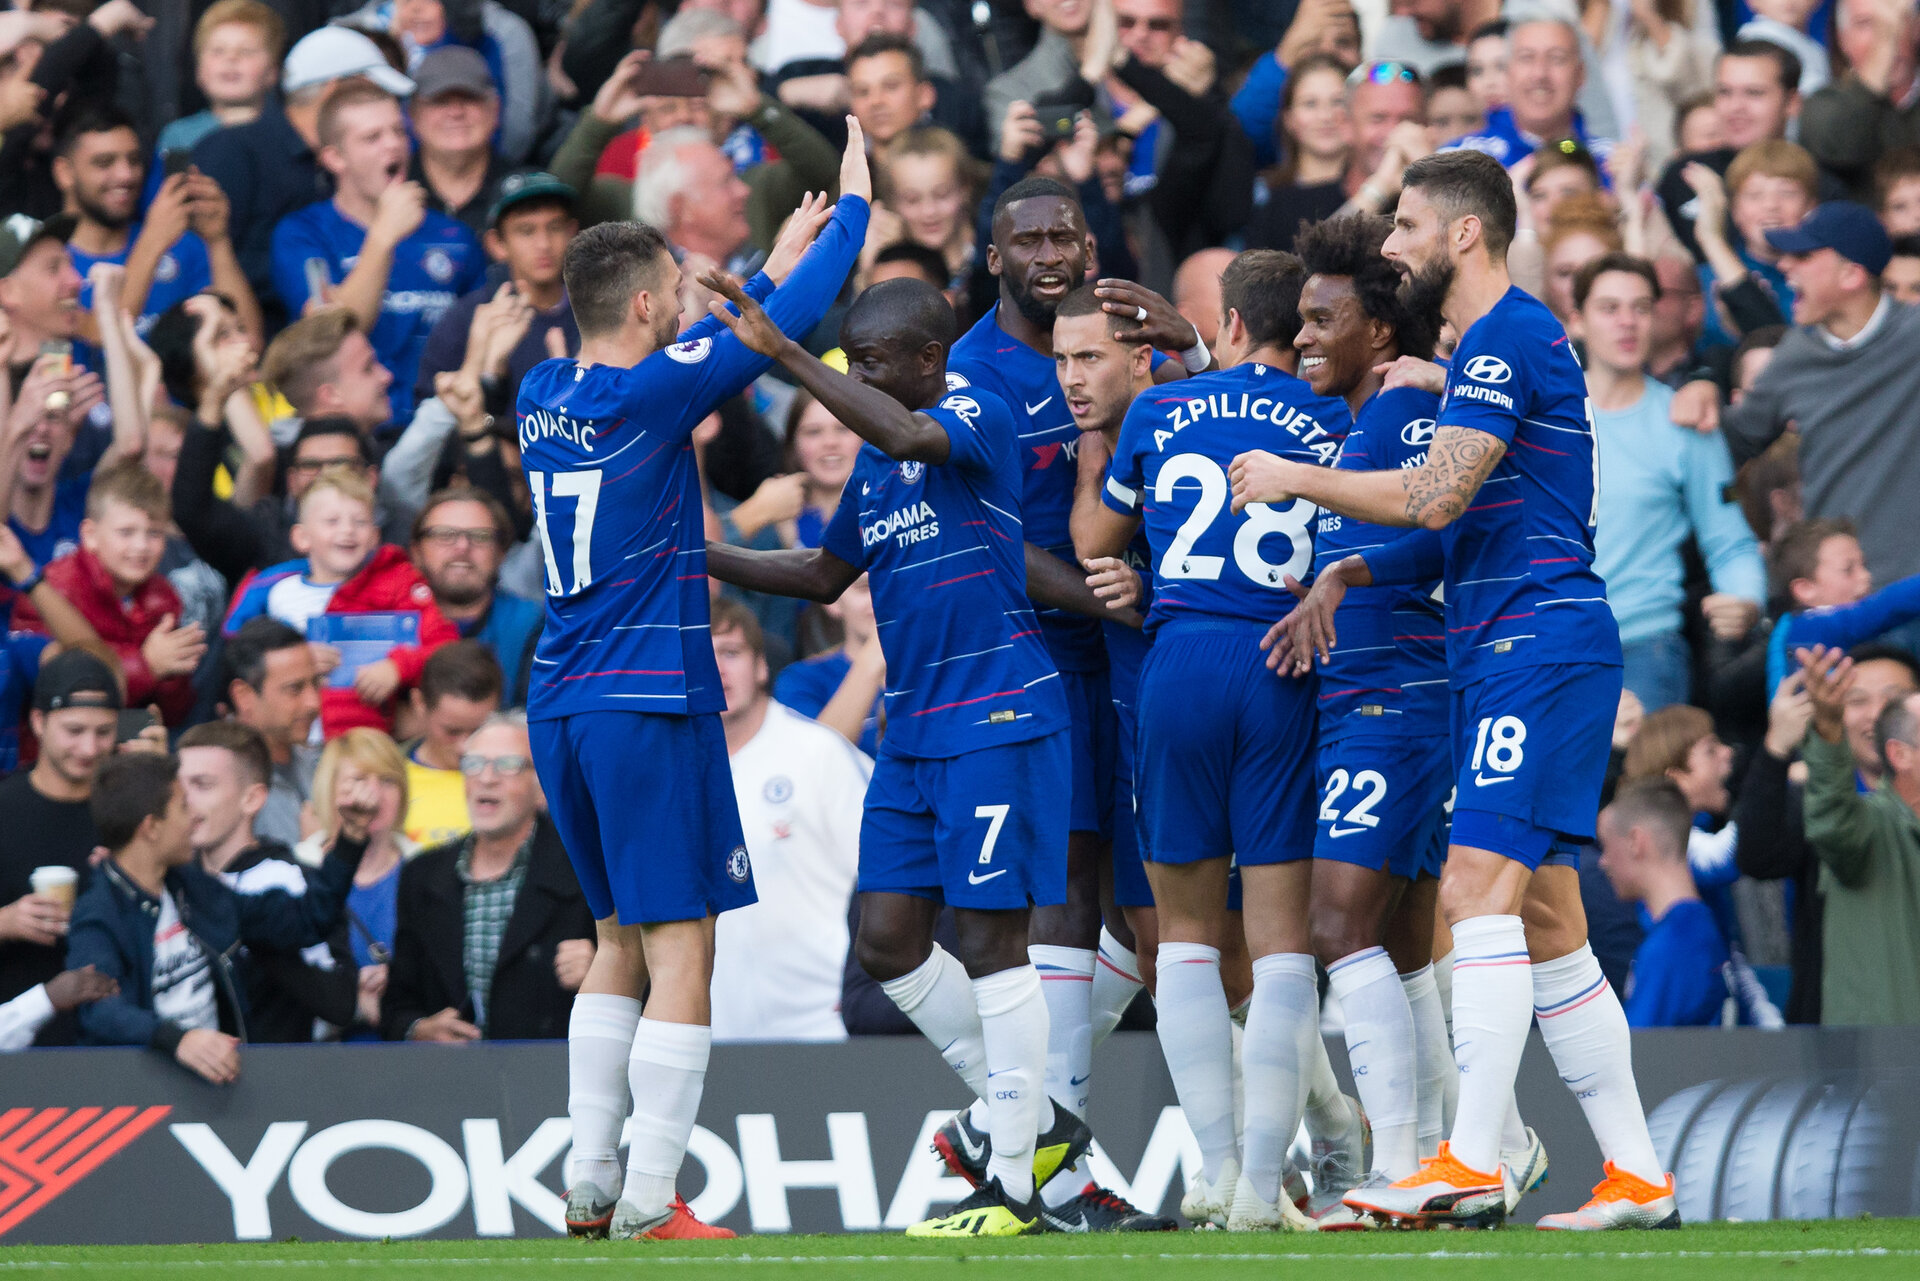 LONDON, ENGLAND - SEPTEMBER 29: Eden Hazard of Chelsea celebrates scoring the opening goal with team-mates during the Premier League match between Chelsea FC and Liverpool FC at Stamford Bridge on September 29, 2018 in London, United Kingdom. (Photo by Craig Mercer/MB Media/Getty Images)